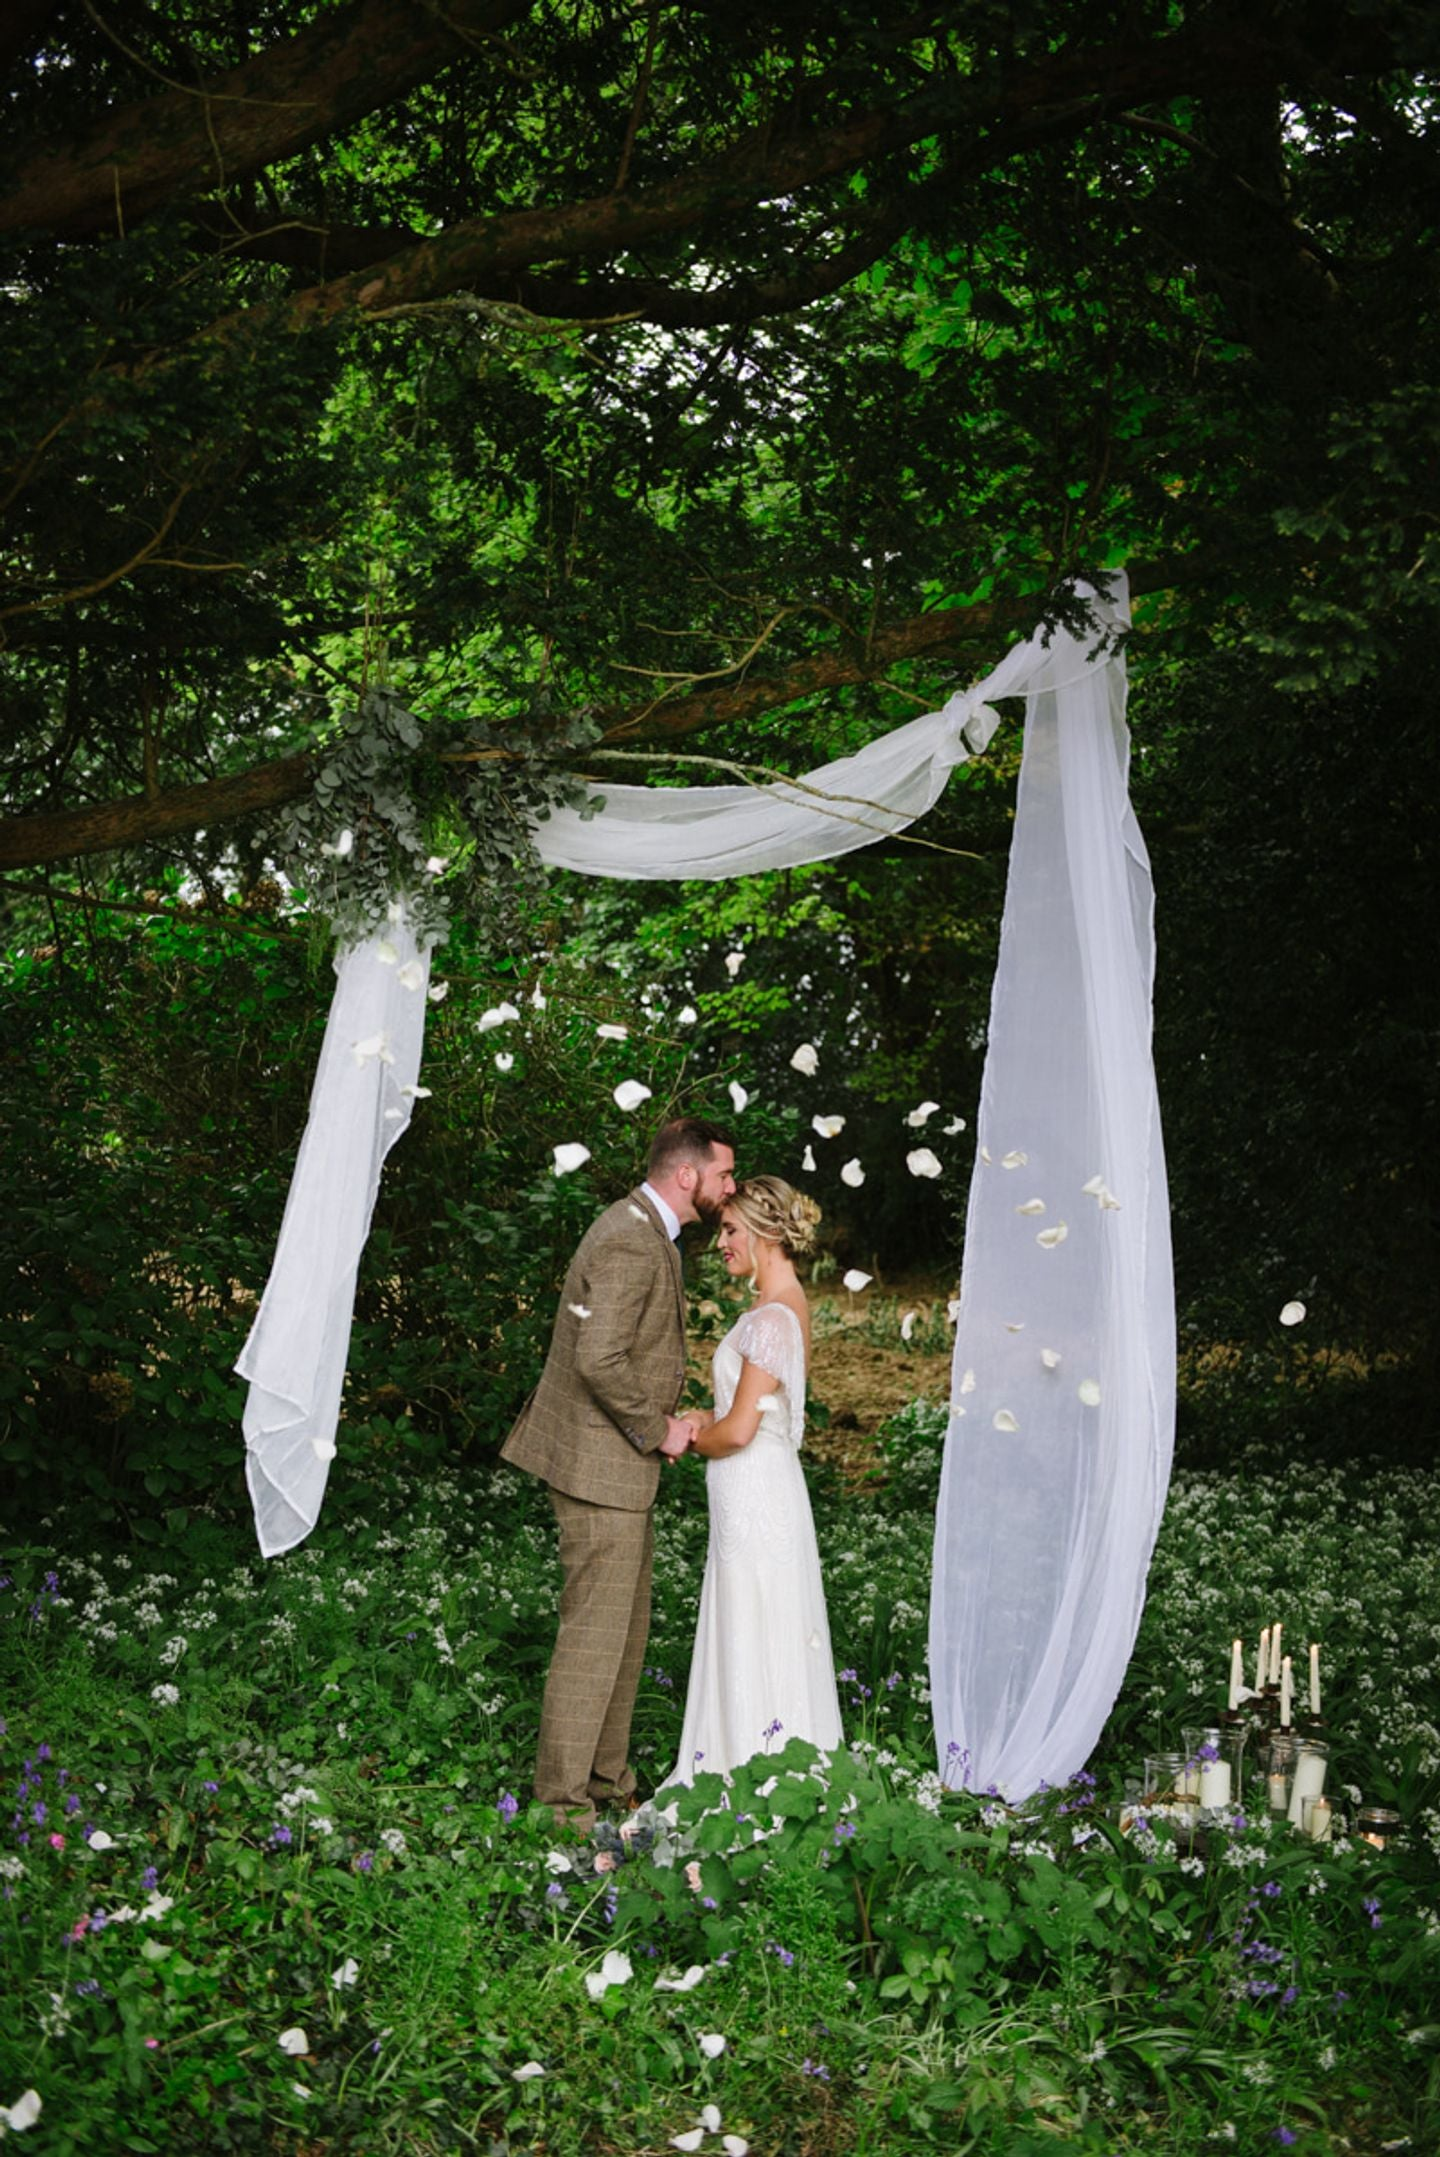 Simple woodland wedding ceremony styling, bride and groom stand below minimal white drapes under trees, he kisses her head, candles are on the floor and rose petals float by